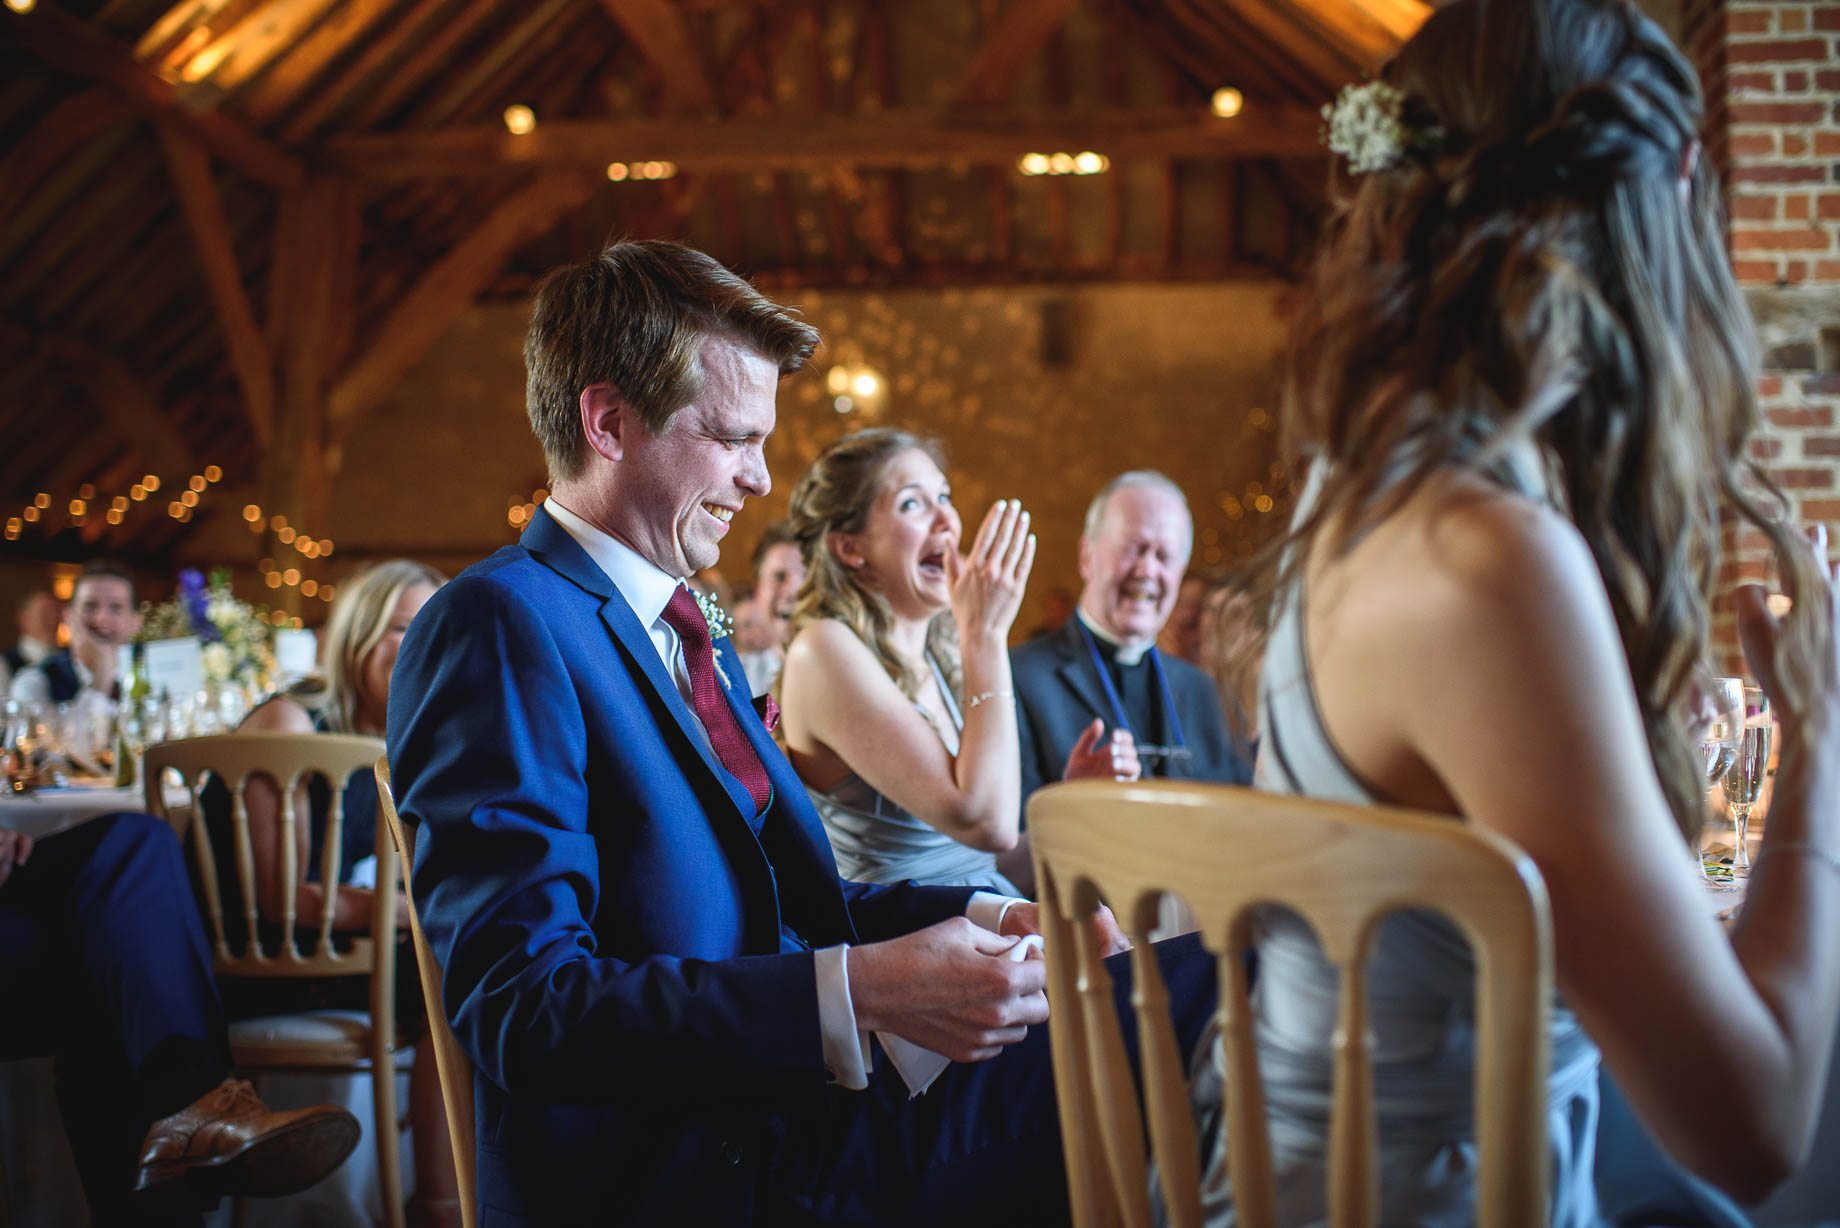 Bury Court Barn wedding photography by Guy Collier - Heather and Pat (147 of 170)